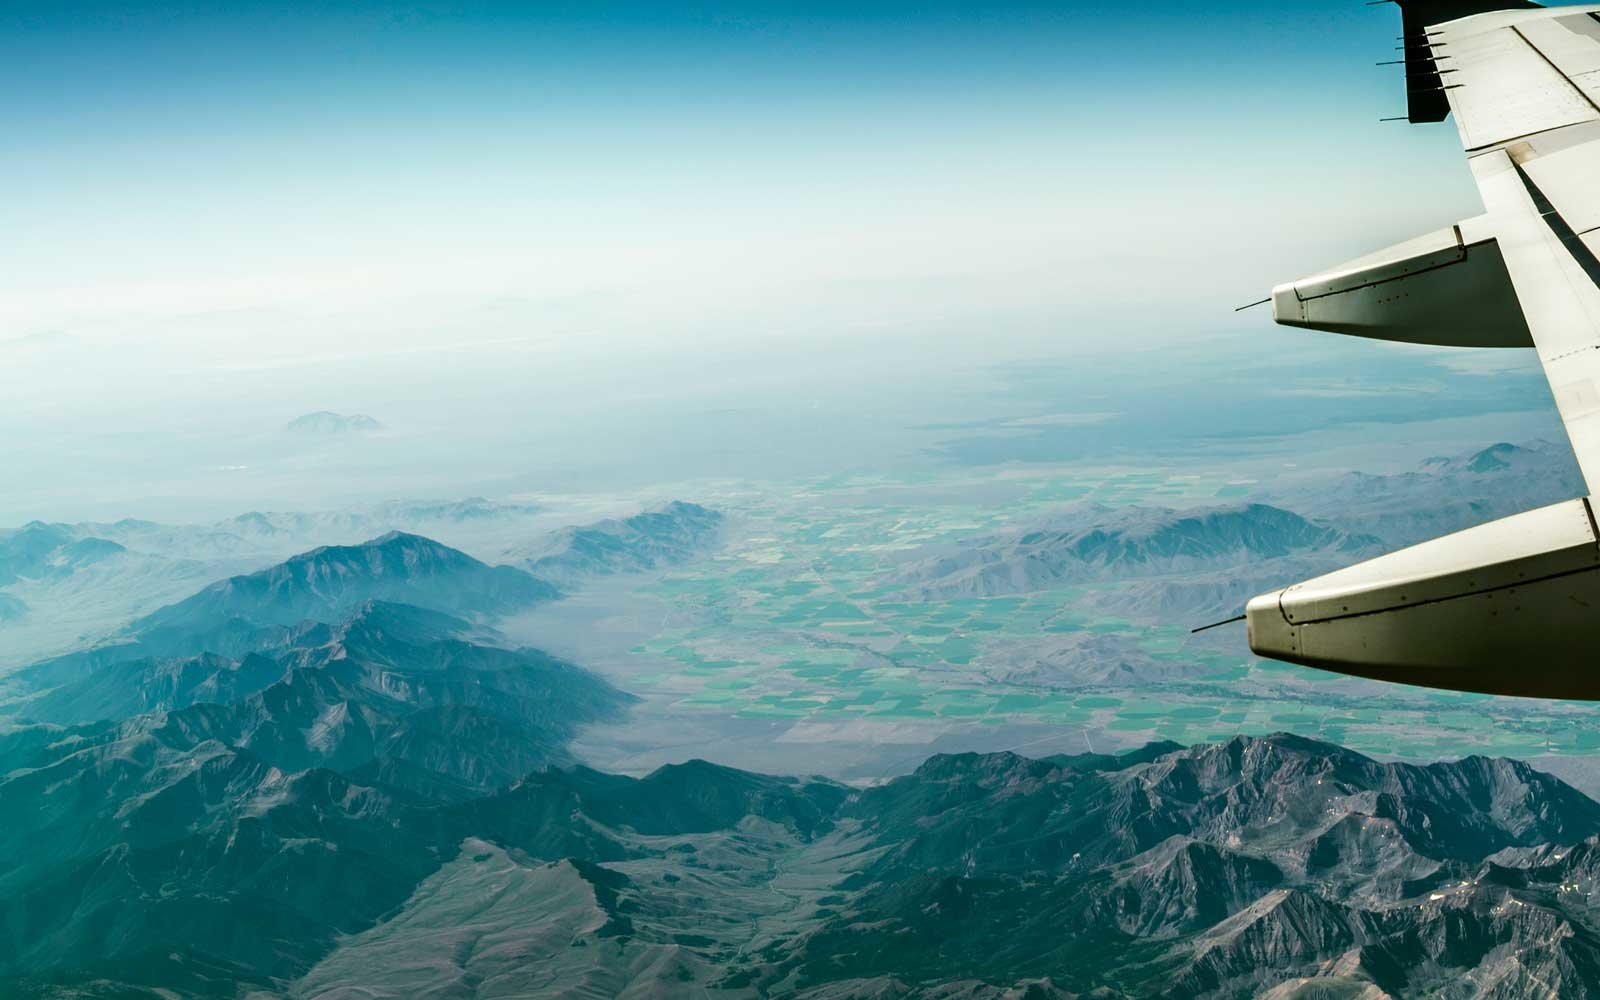 Airplane over Rocky Mountains